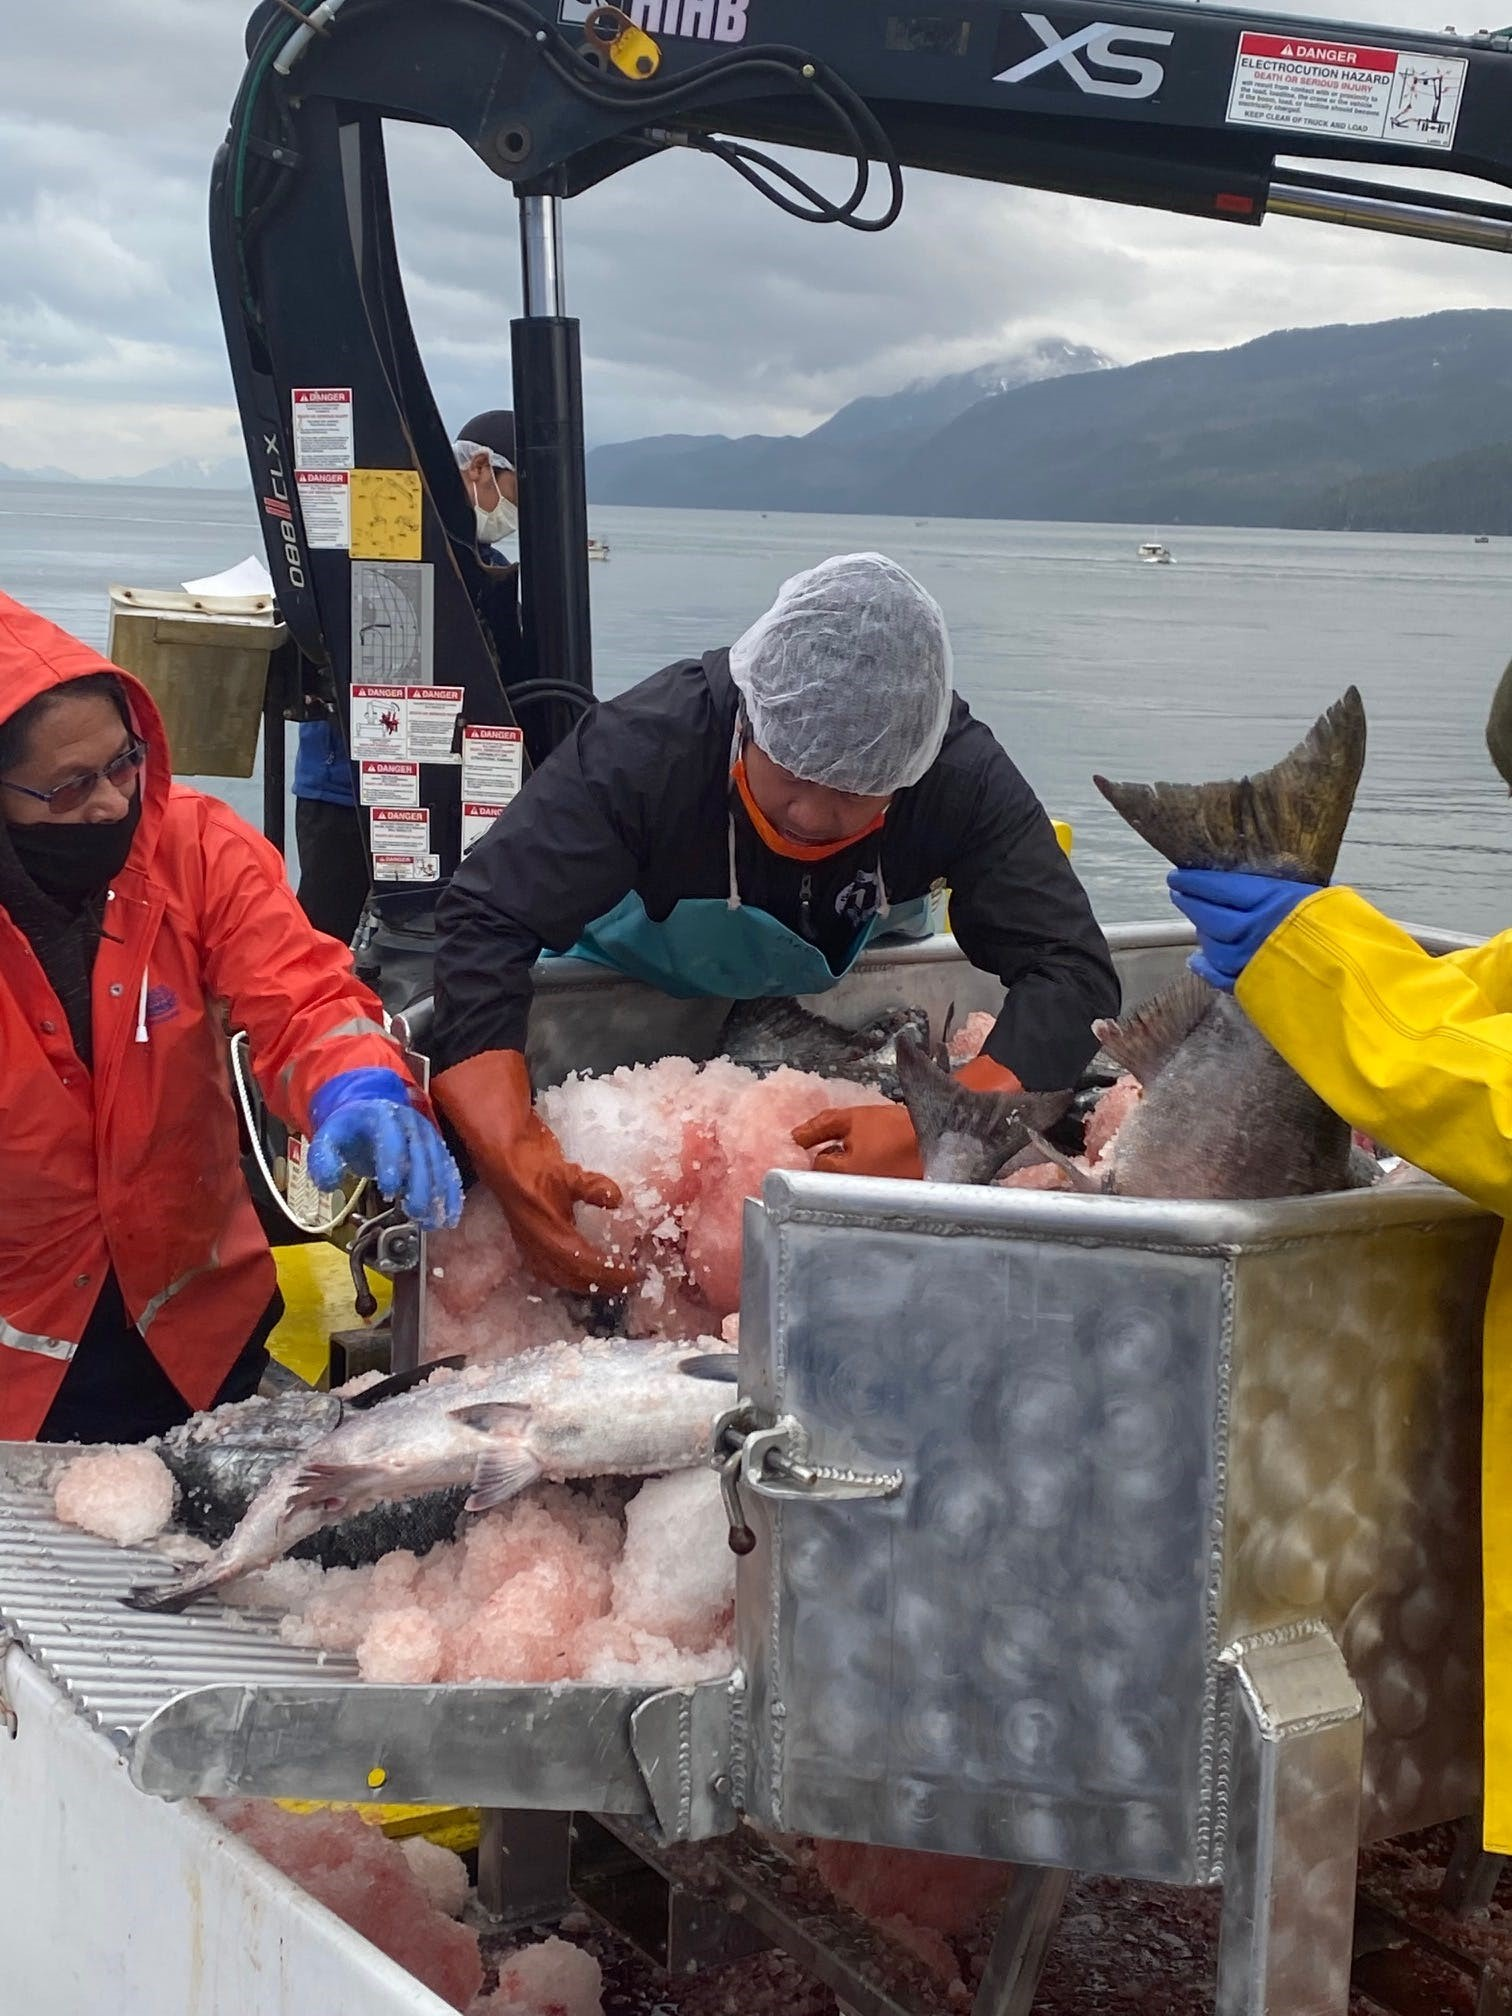 Indian Country Today - COVID spikes at Alaska fish processing plants raise alarm